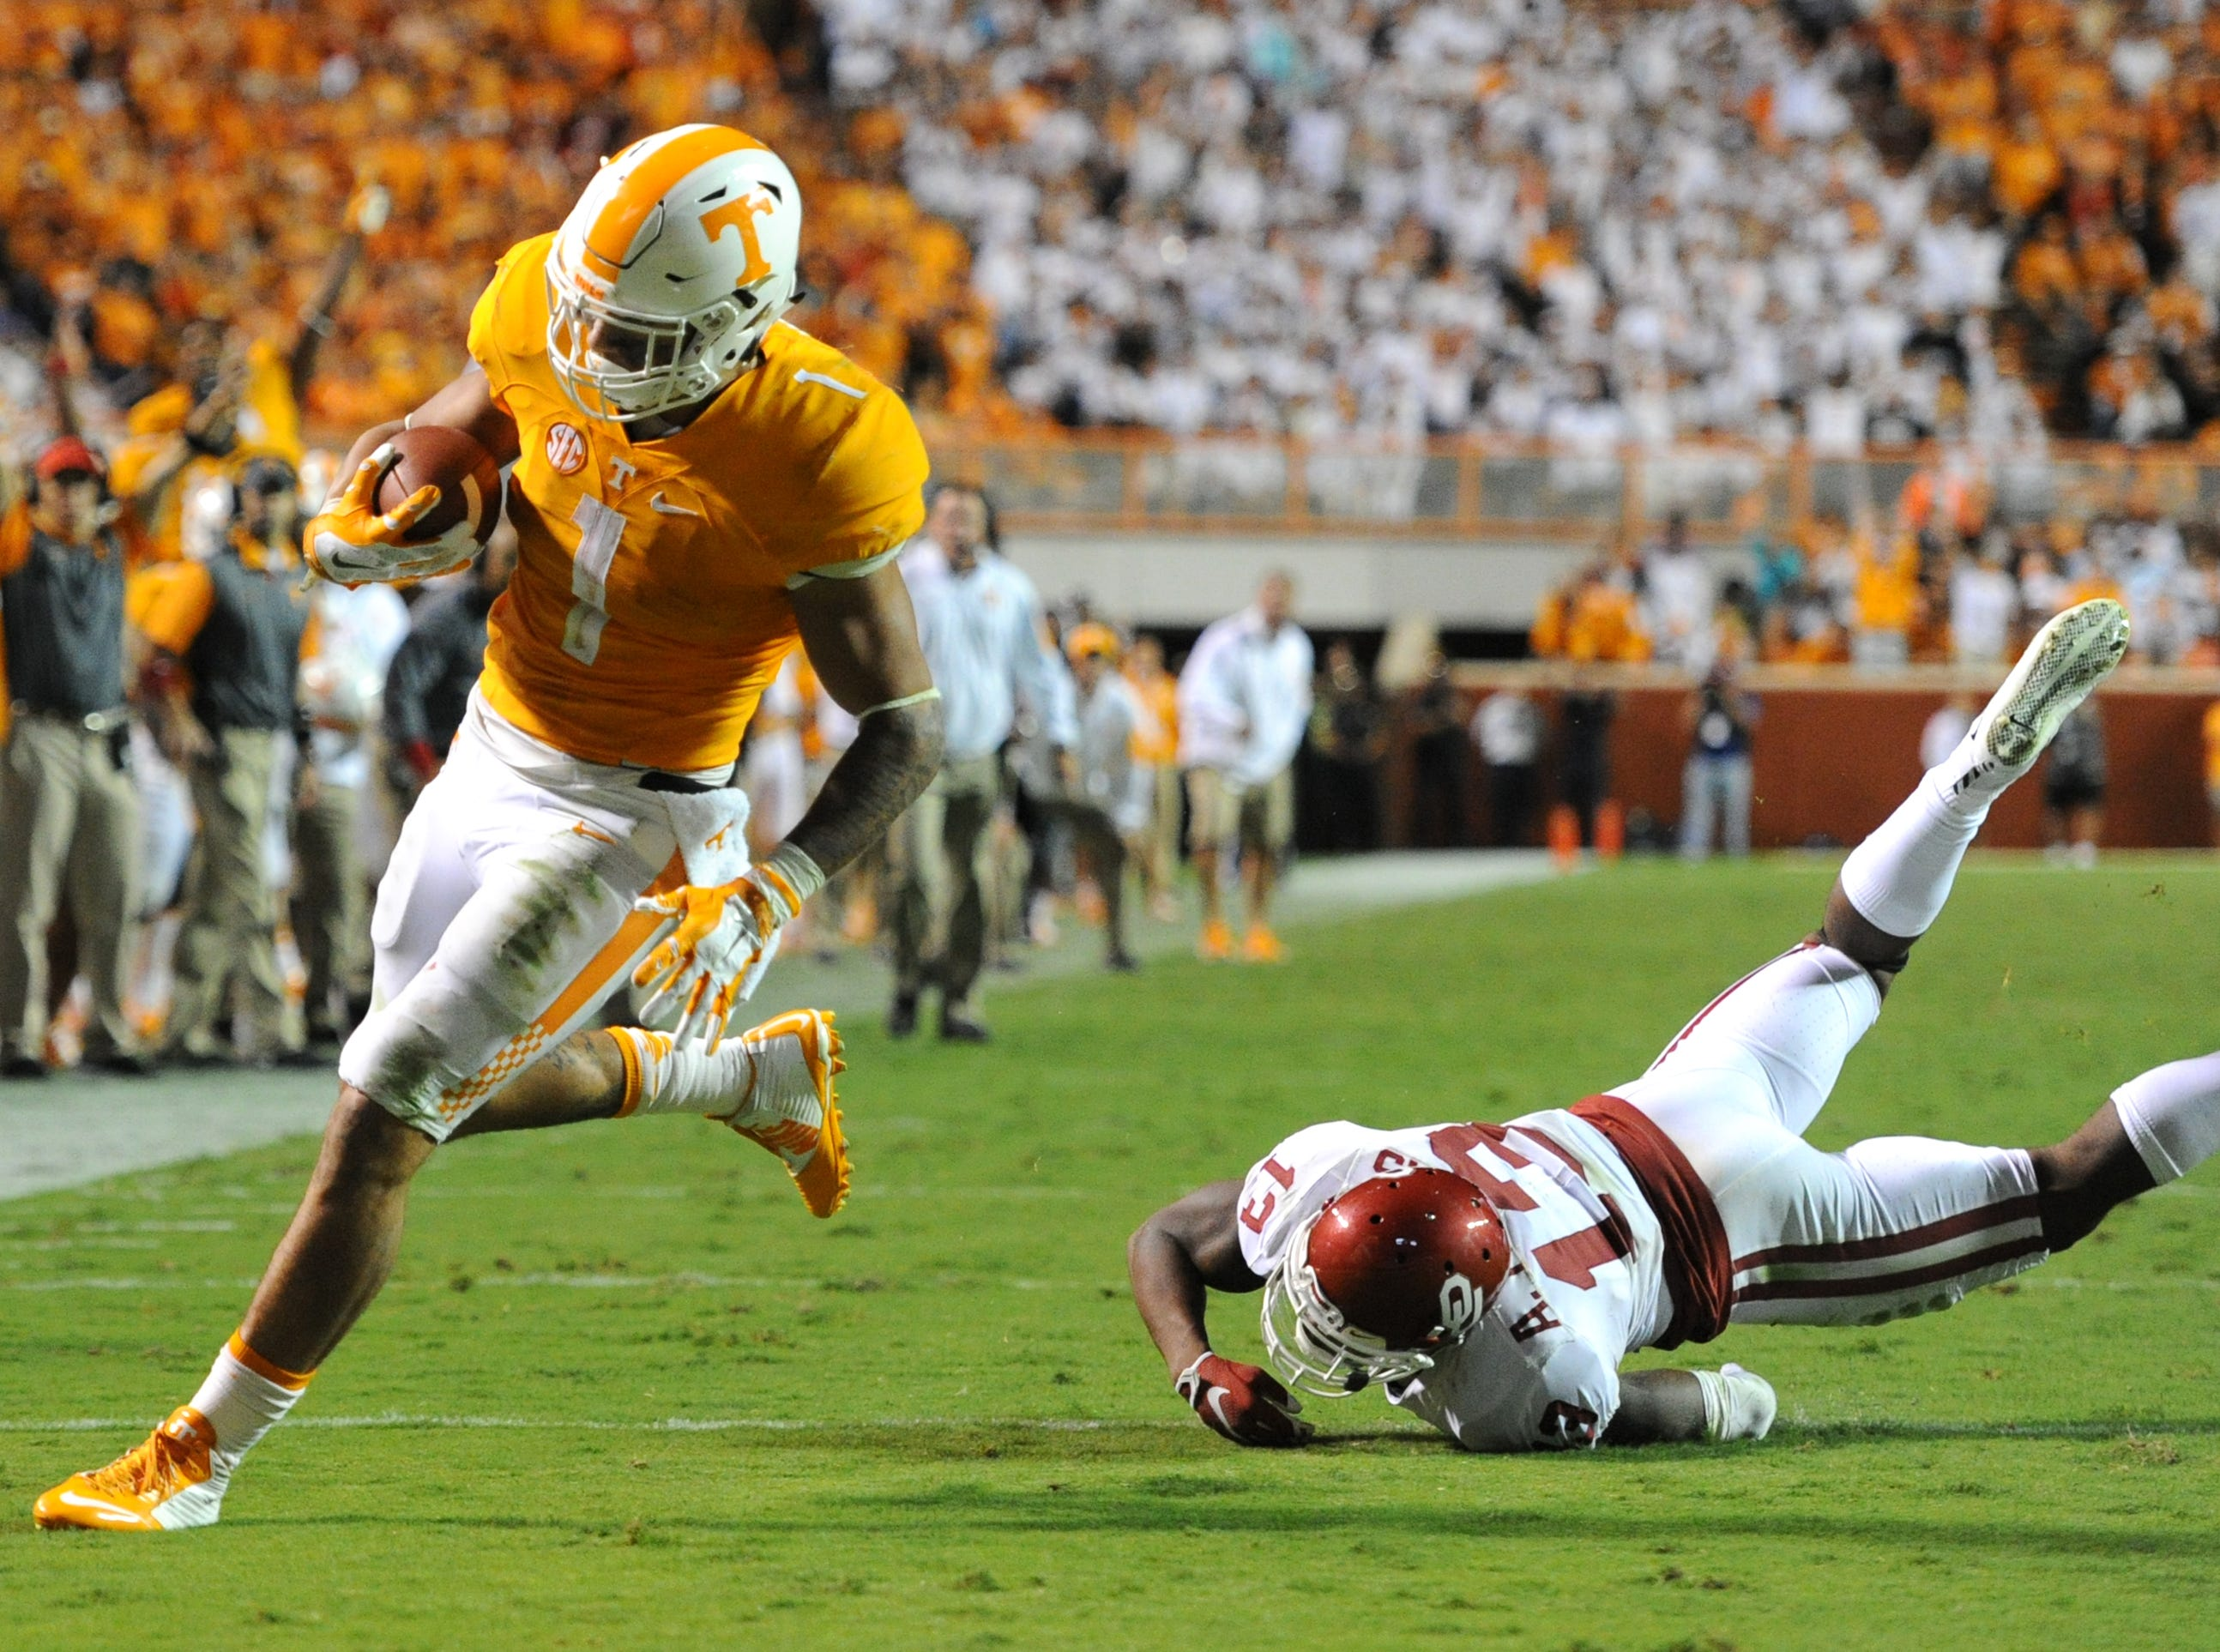 Tennessee running back Jalen Hurd (1) gets past Oklahoma safety Ahmad Thomas (13) to score an touchdown in the first overtime period at Neyland Stadium on Saturday, Sept. 12, 2015 in Knoxville, Tenn. Oklahoma won 31-24.